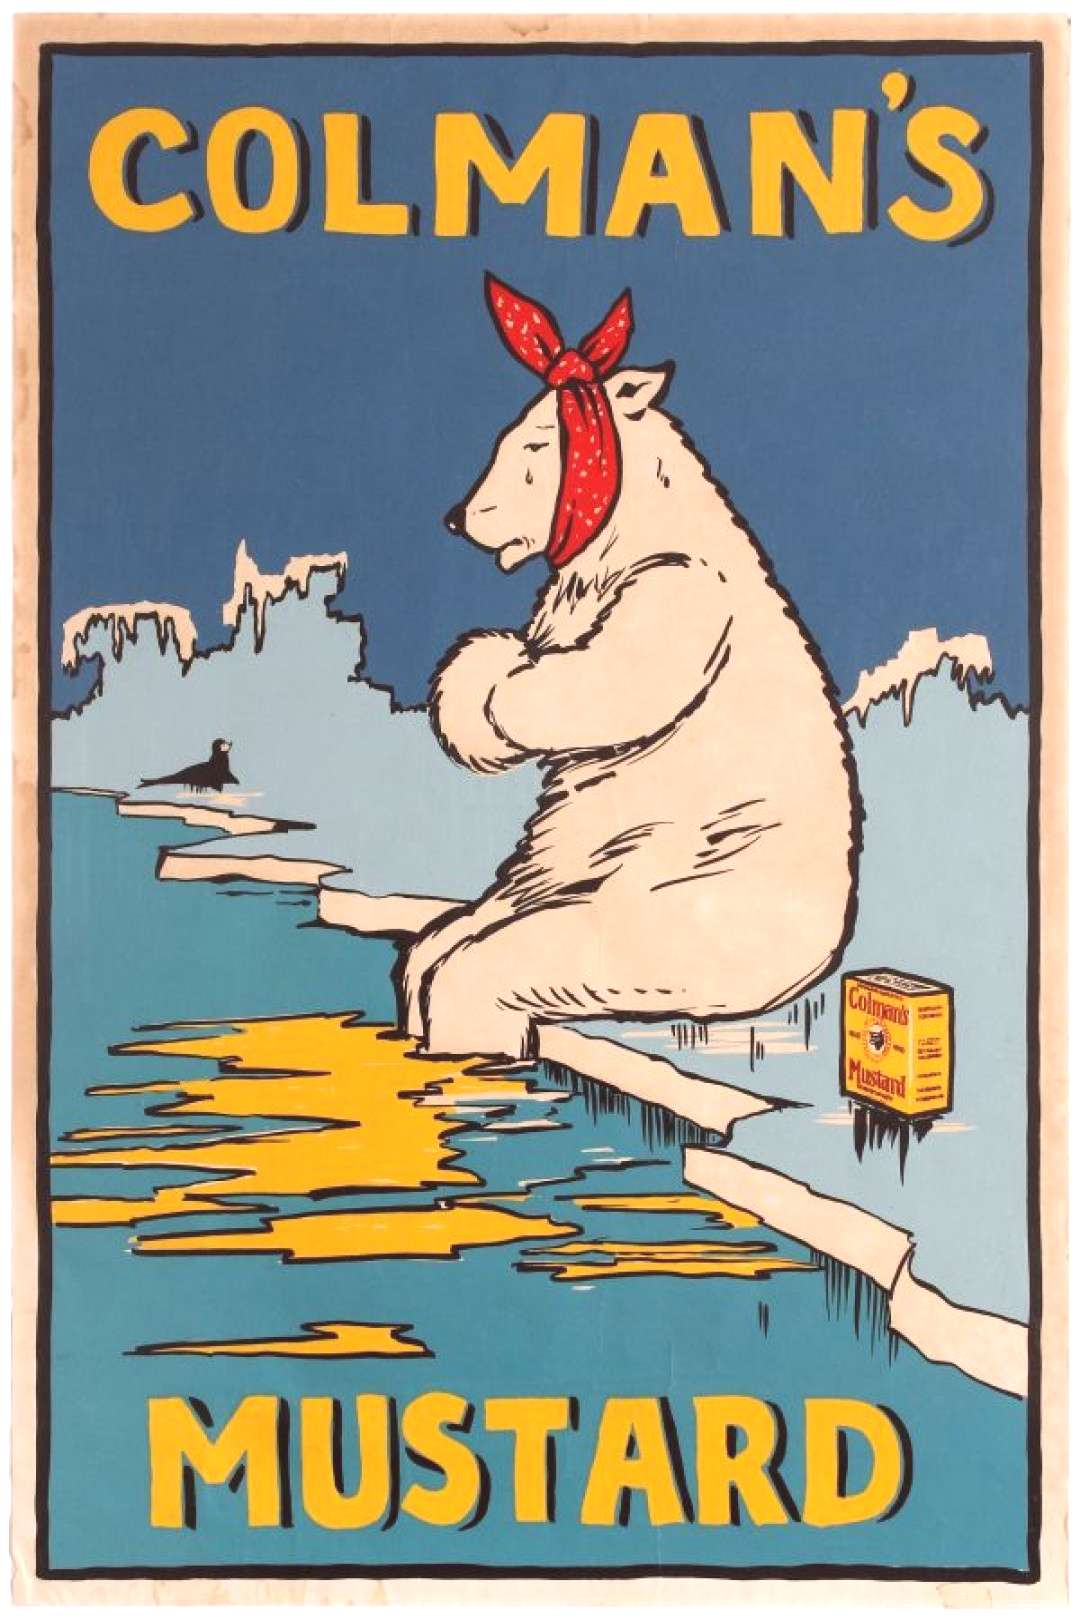 Colman's Mustard Polar Bear UK / 1920s / Advertising Posters / 72.5x48 Original vintage advertising